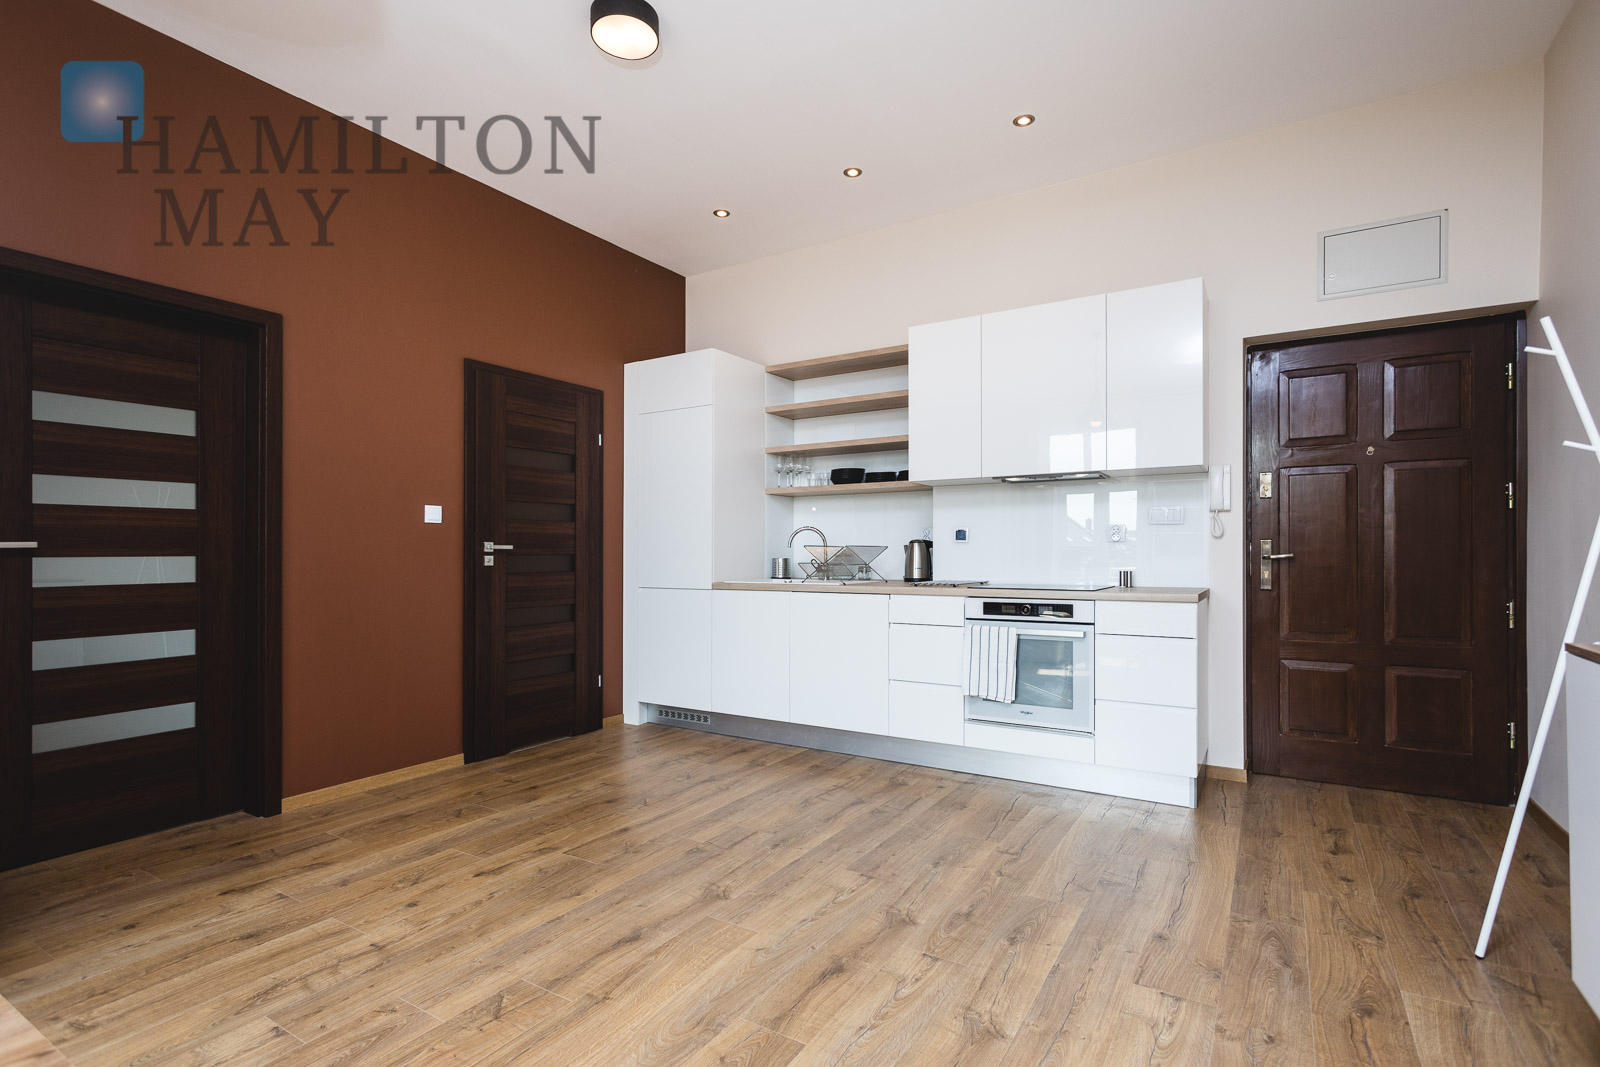 Cozy, comfortable one bedroom apartment in a perfect location Krakow for rent